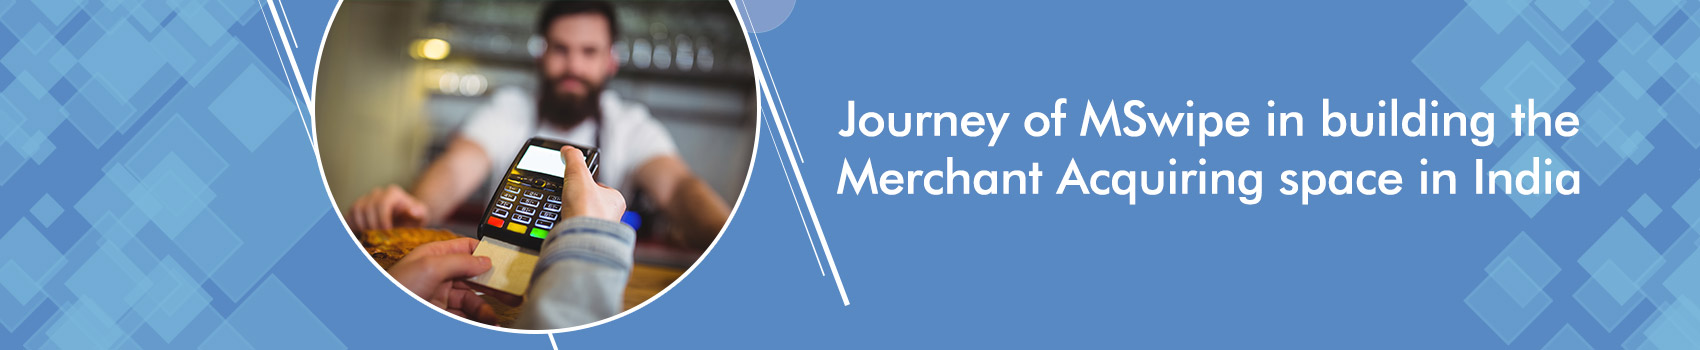 Journey of MSwipe in building the Merchant Acquiring space in India